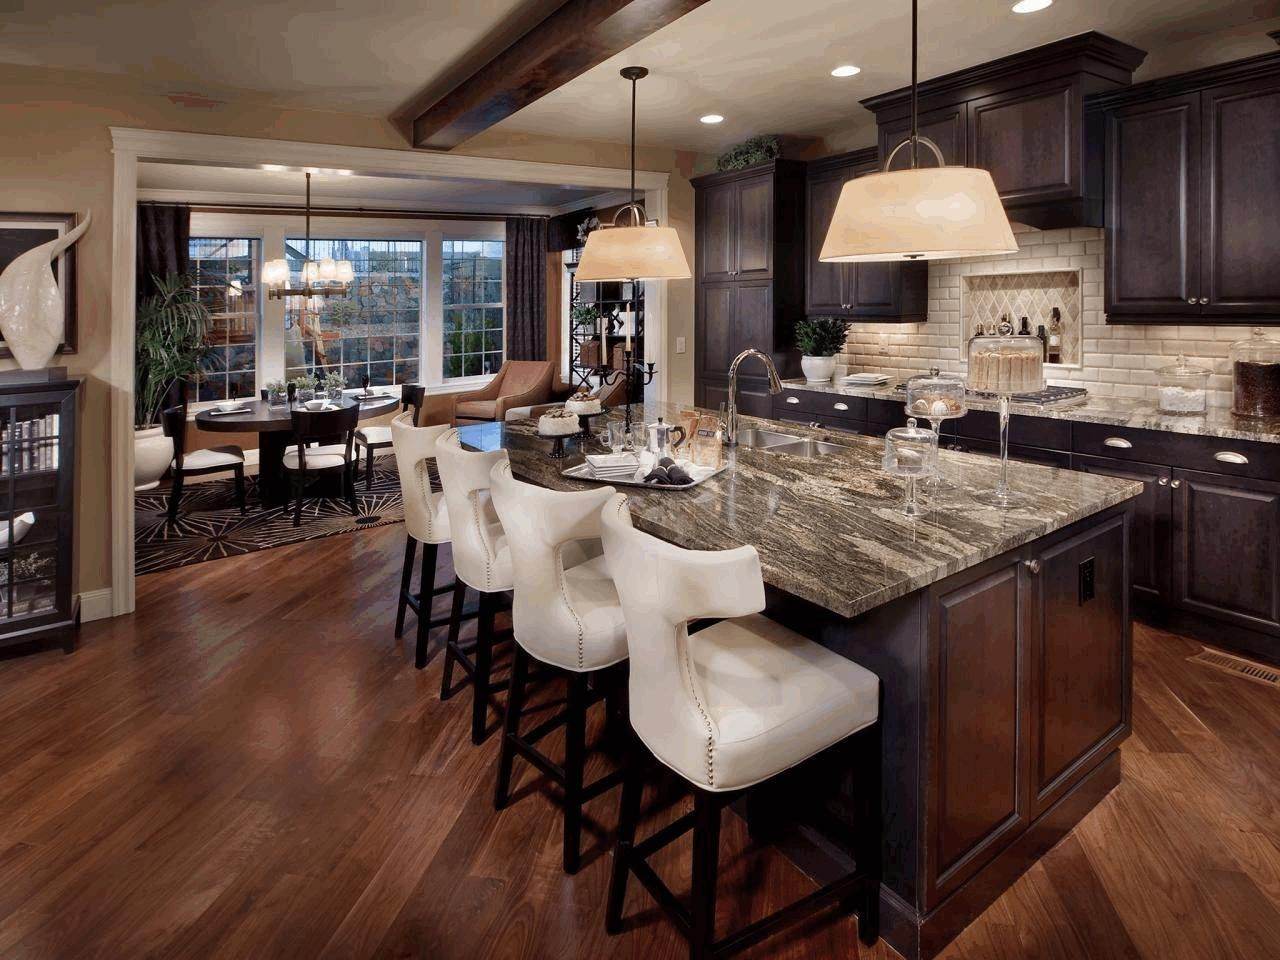 Ordinaire 99+ Granite Countertops Ft Lauderdale   Apartment Kitchen Cabinet Ideas  Check More At Http: